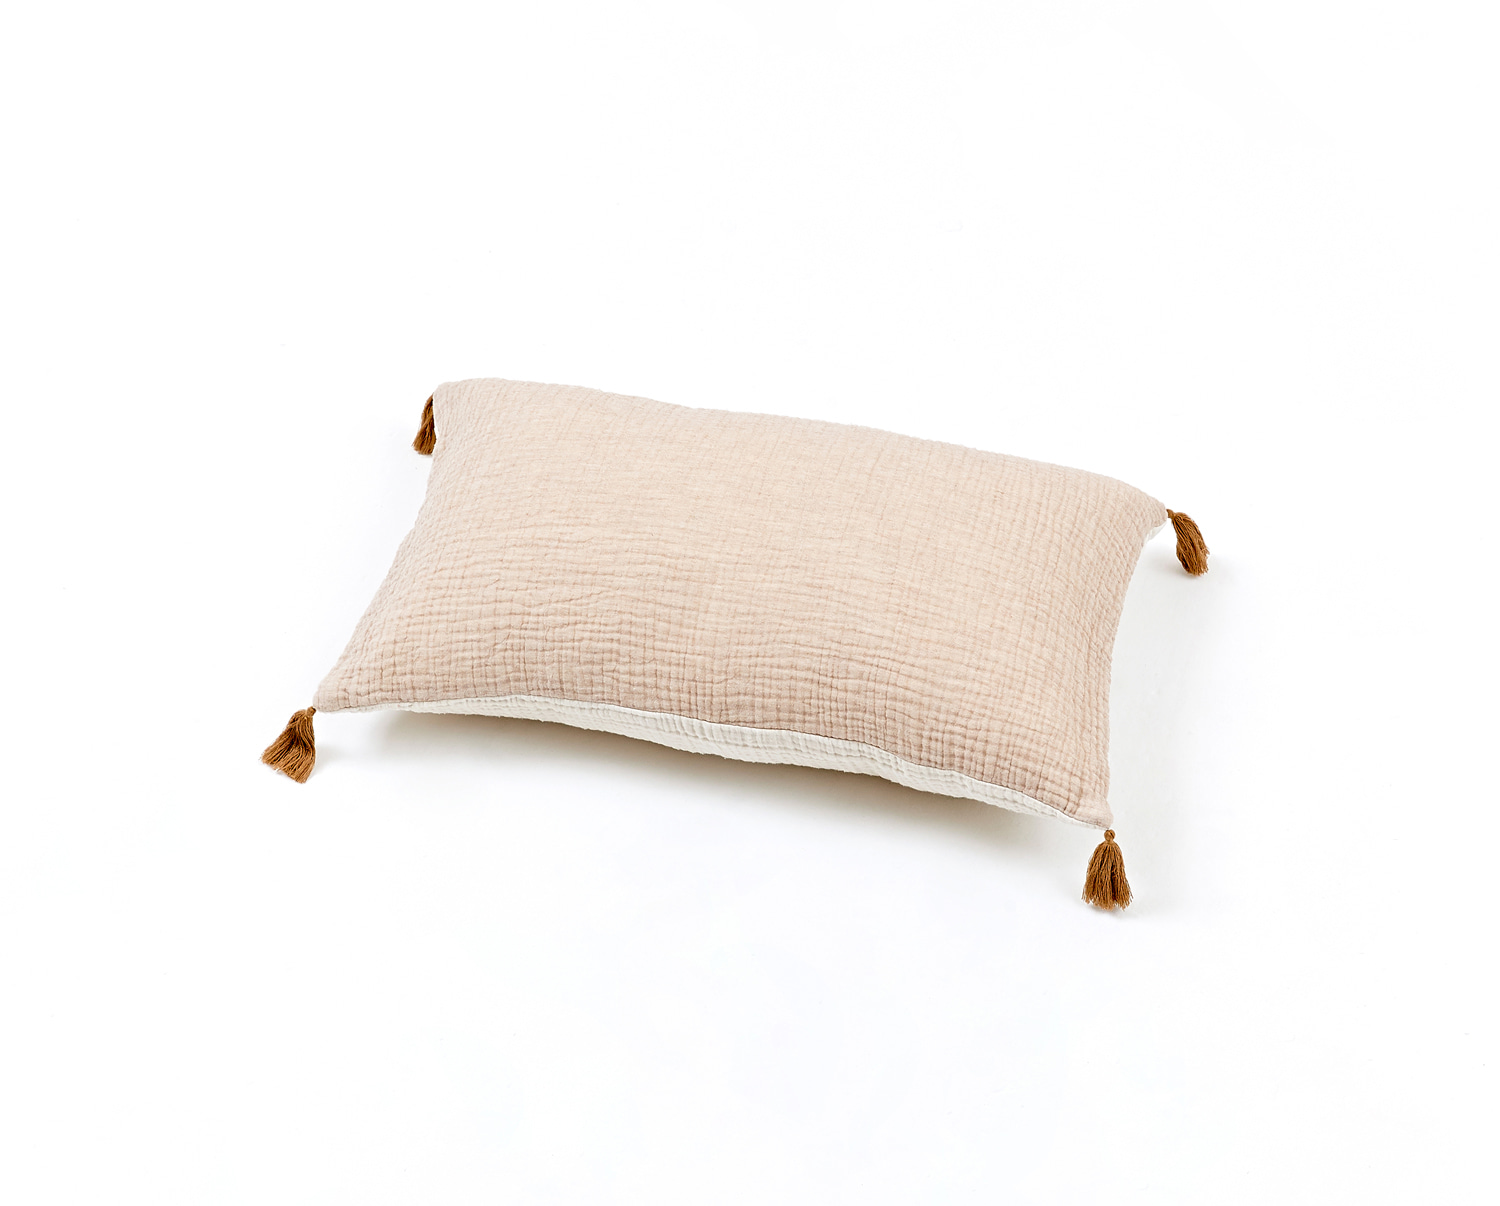 BICOLOR GAUZE CUSHION -BEIGE / IVORY